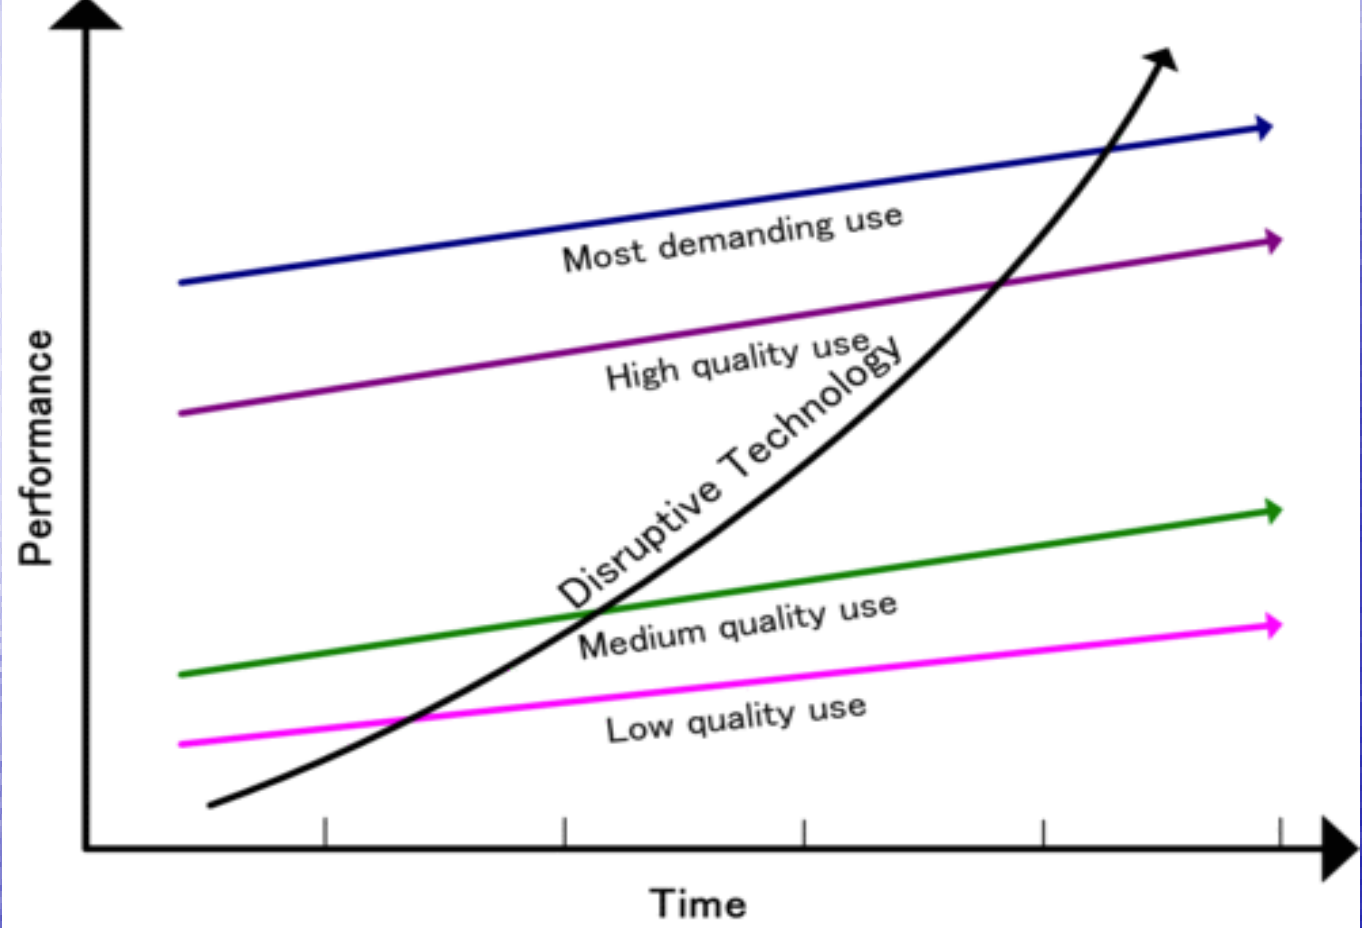 Christiansen and Raynor's disruptive innovation curve